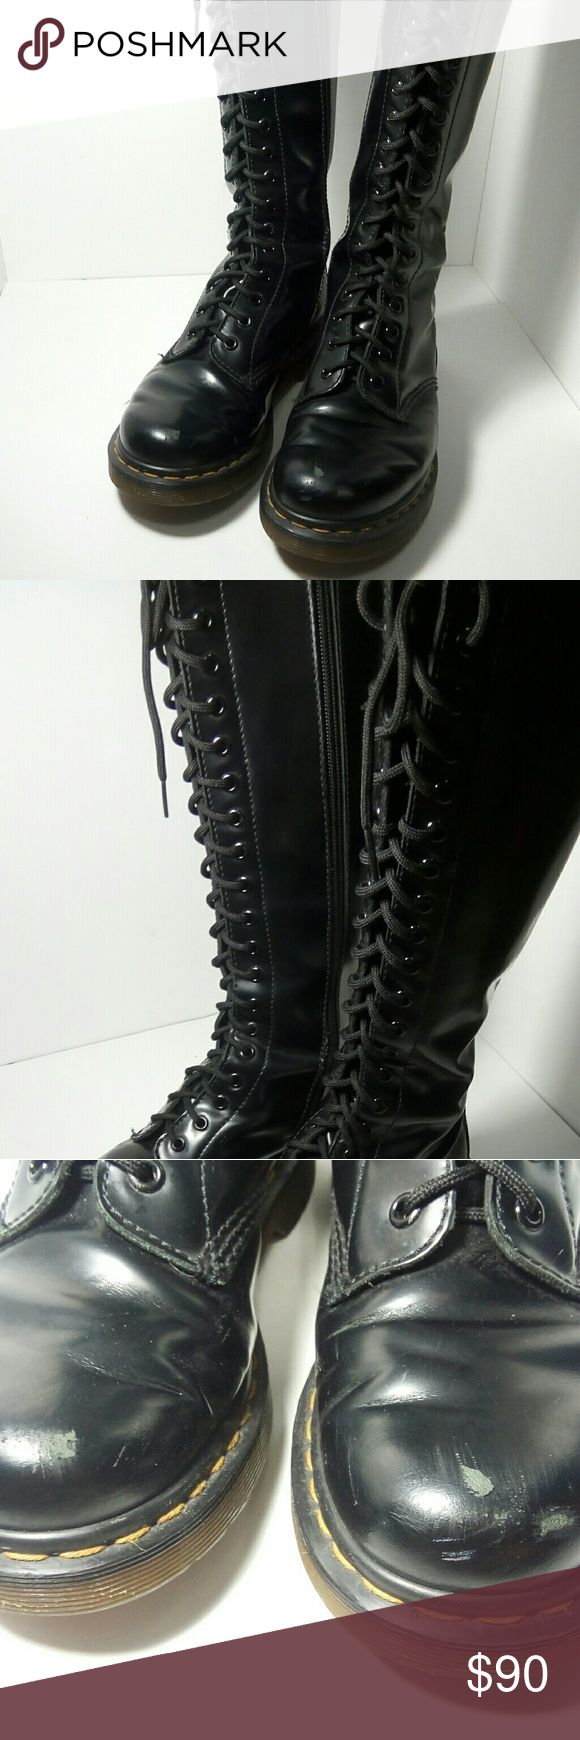 Doc Martens knee high boots | Dr. Martens 20-hole When you just plain want to look badass. Punk, goth, edgy, whatever style you want, these will suit you. Doc Martens 20 eyelet knee high boots. Worn but worn in to perfect comfort! Zippered sides for easy wear.  Size US 7-7.5, UK 5. Real leather. Scuffs and wear shown in photos.  Let me know if you have any questions and I will answer them ASAP! :) Dr. Martens Shoes Lace Up Boots